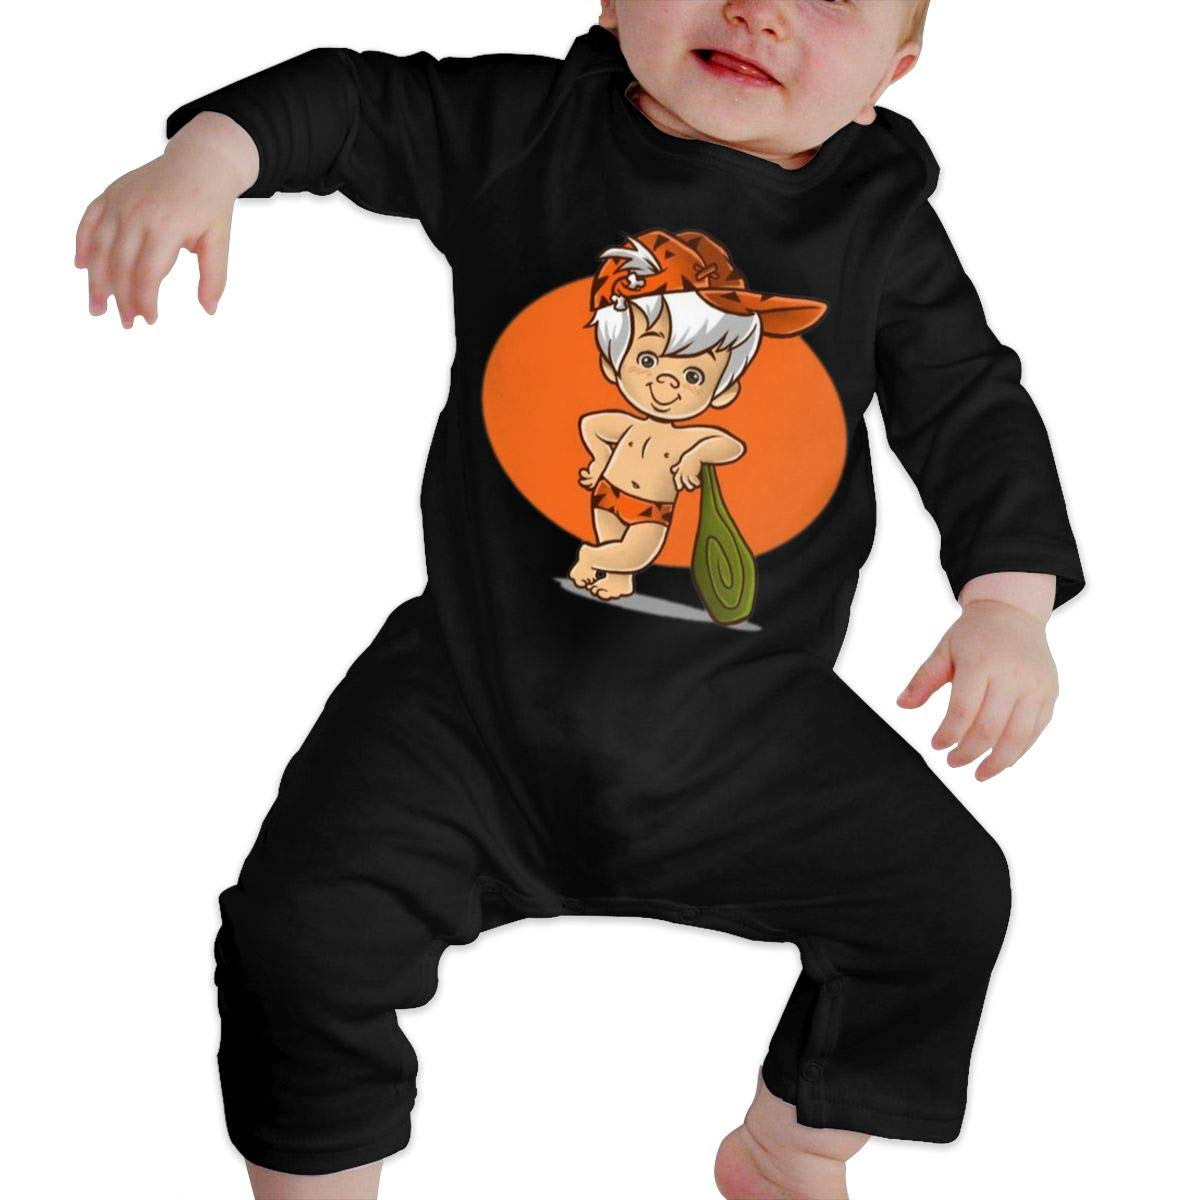 SININIDR Newborn Jumpsuit Infant Baby Girls Flintstones Bam Long-Sleeve Bodysuit Playsuit Outfits Clothes Black